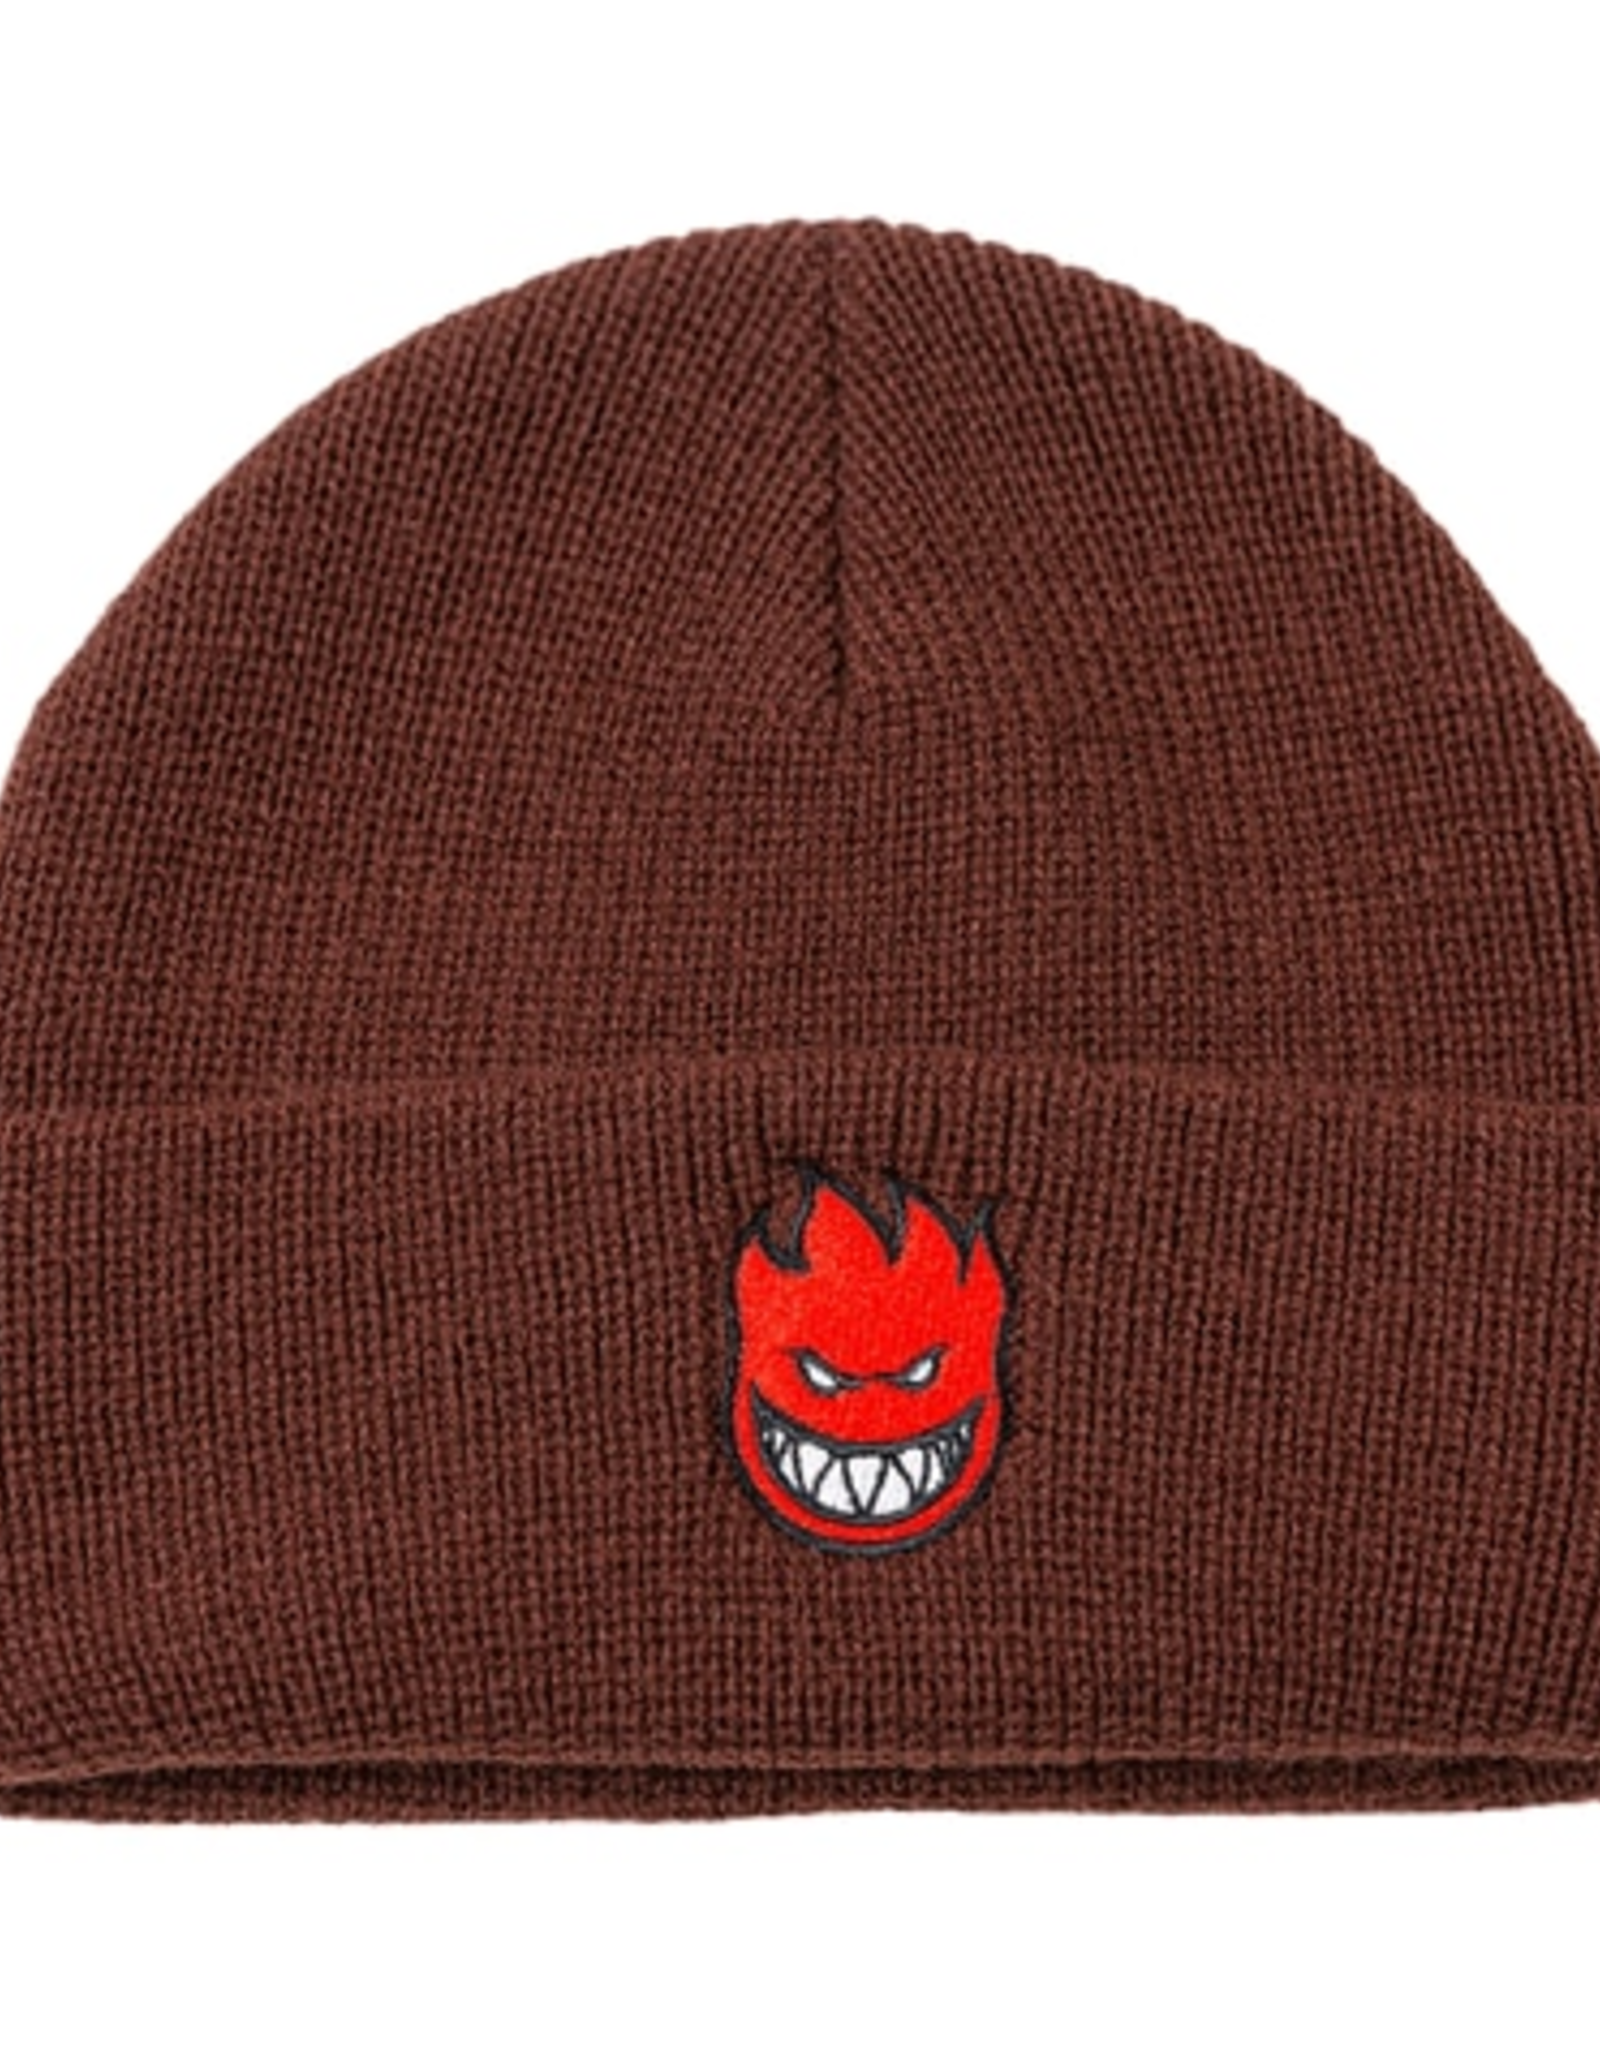 SPITFIRE SPITFIRE CUFF BIGHEAD BEANIE DARK RED BROWN